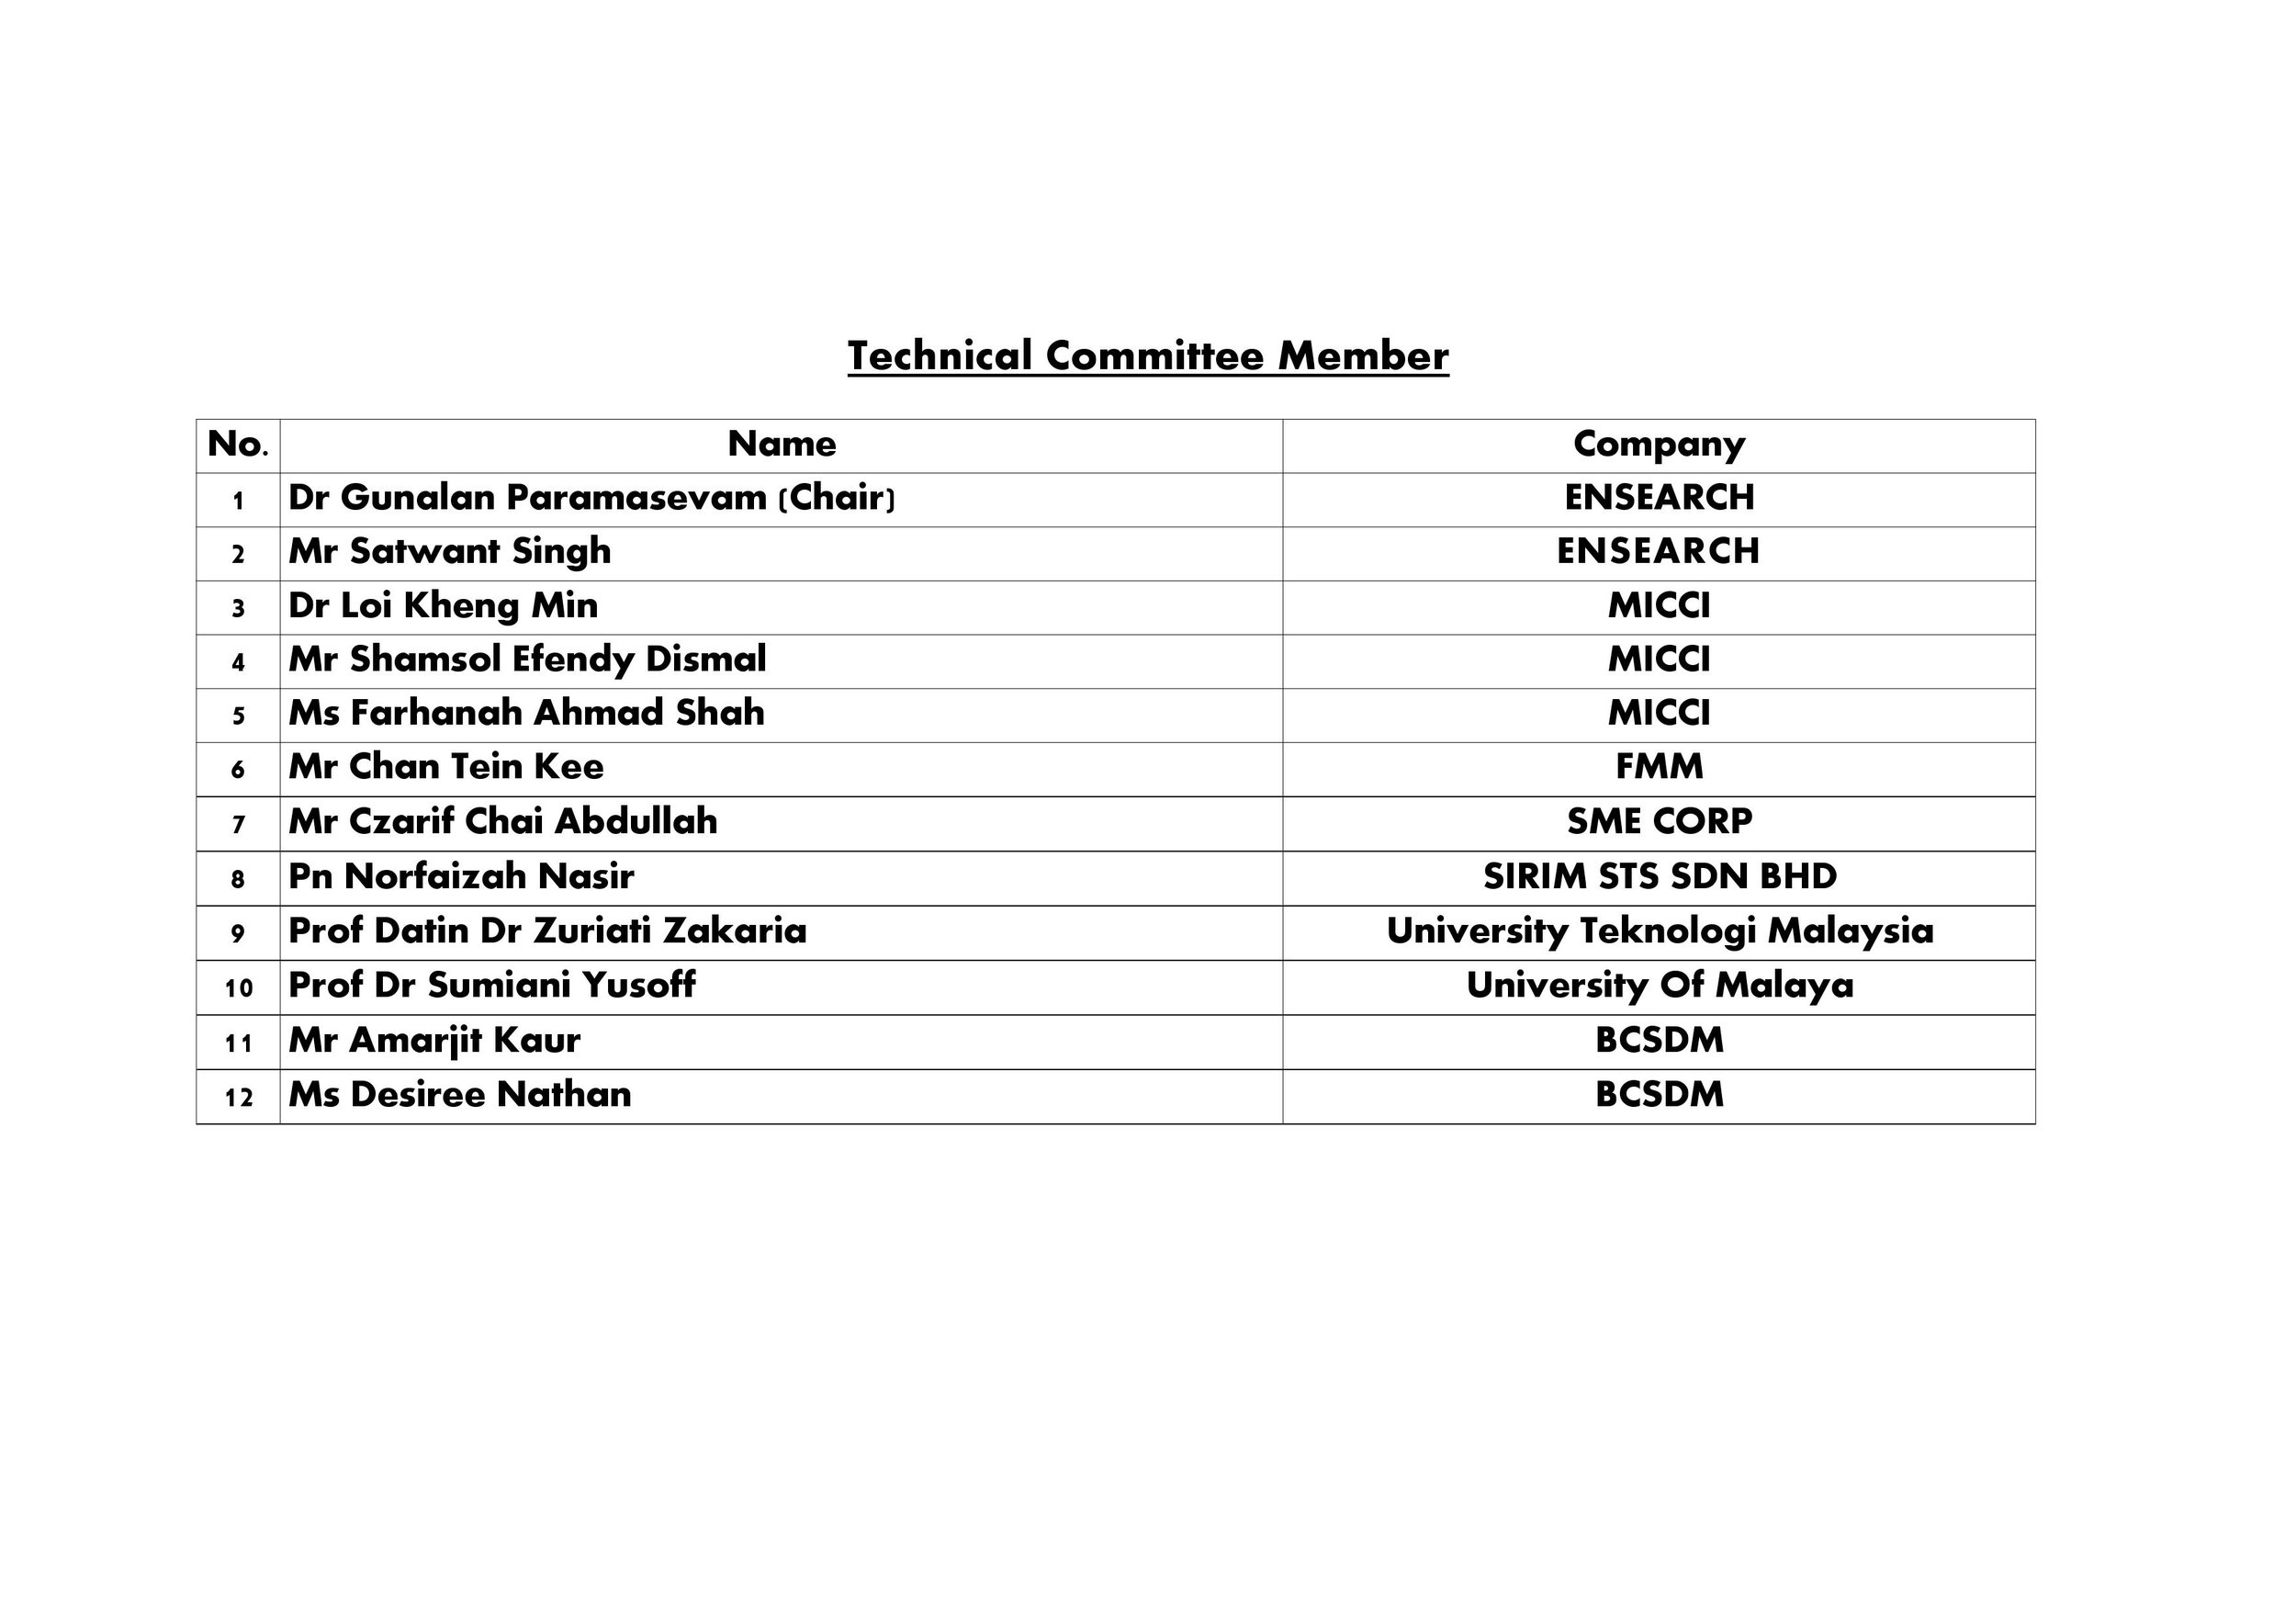 Technical Committee Member.jpg